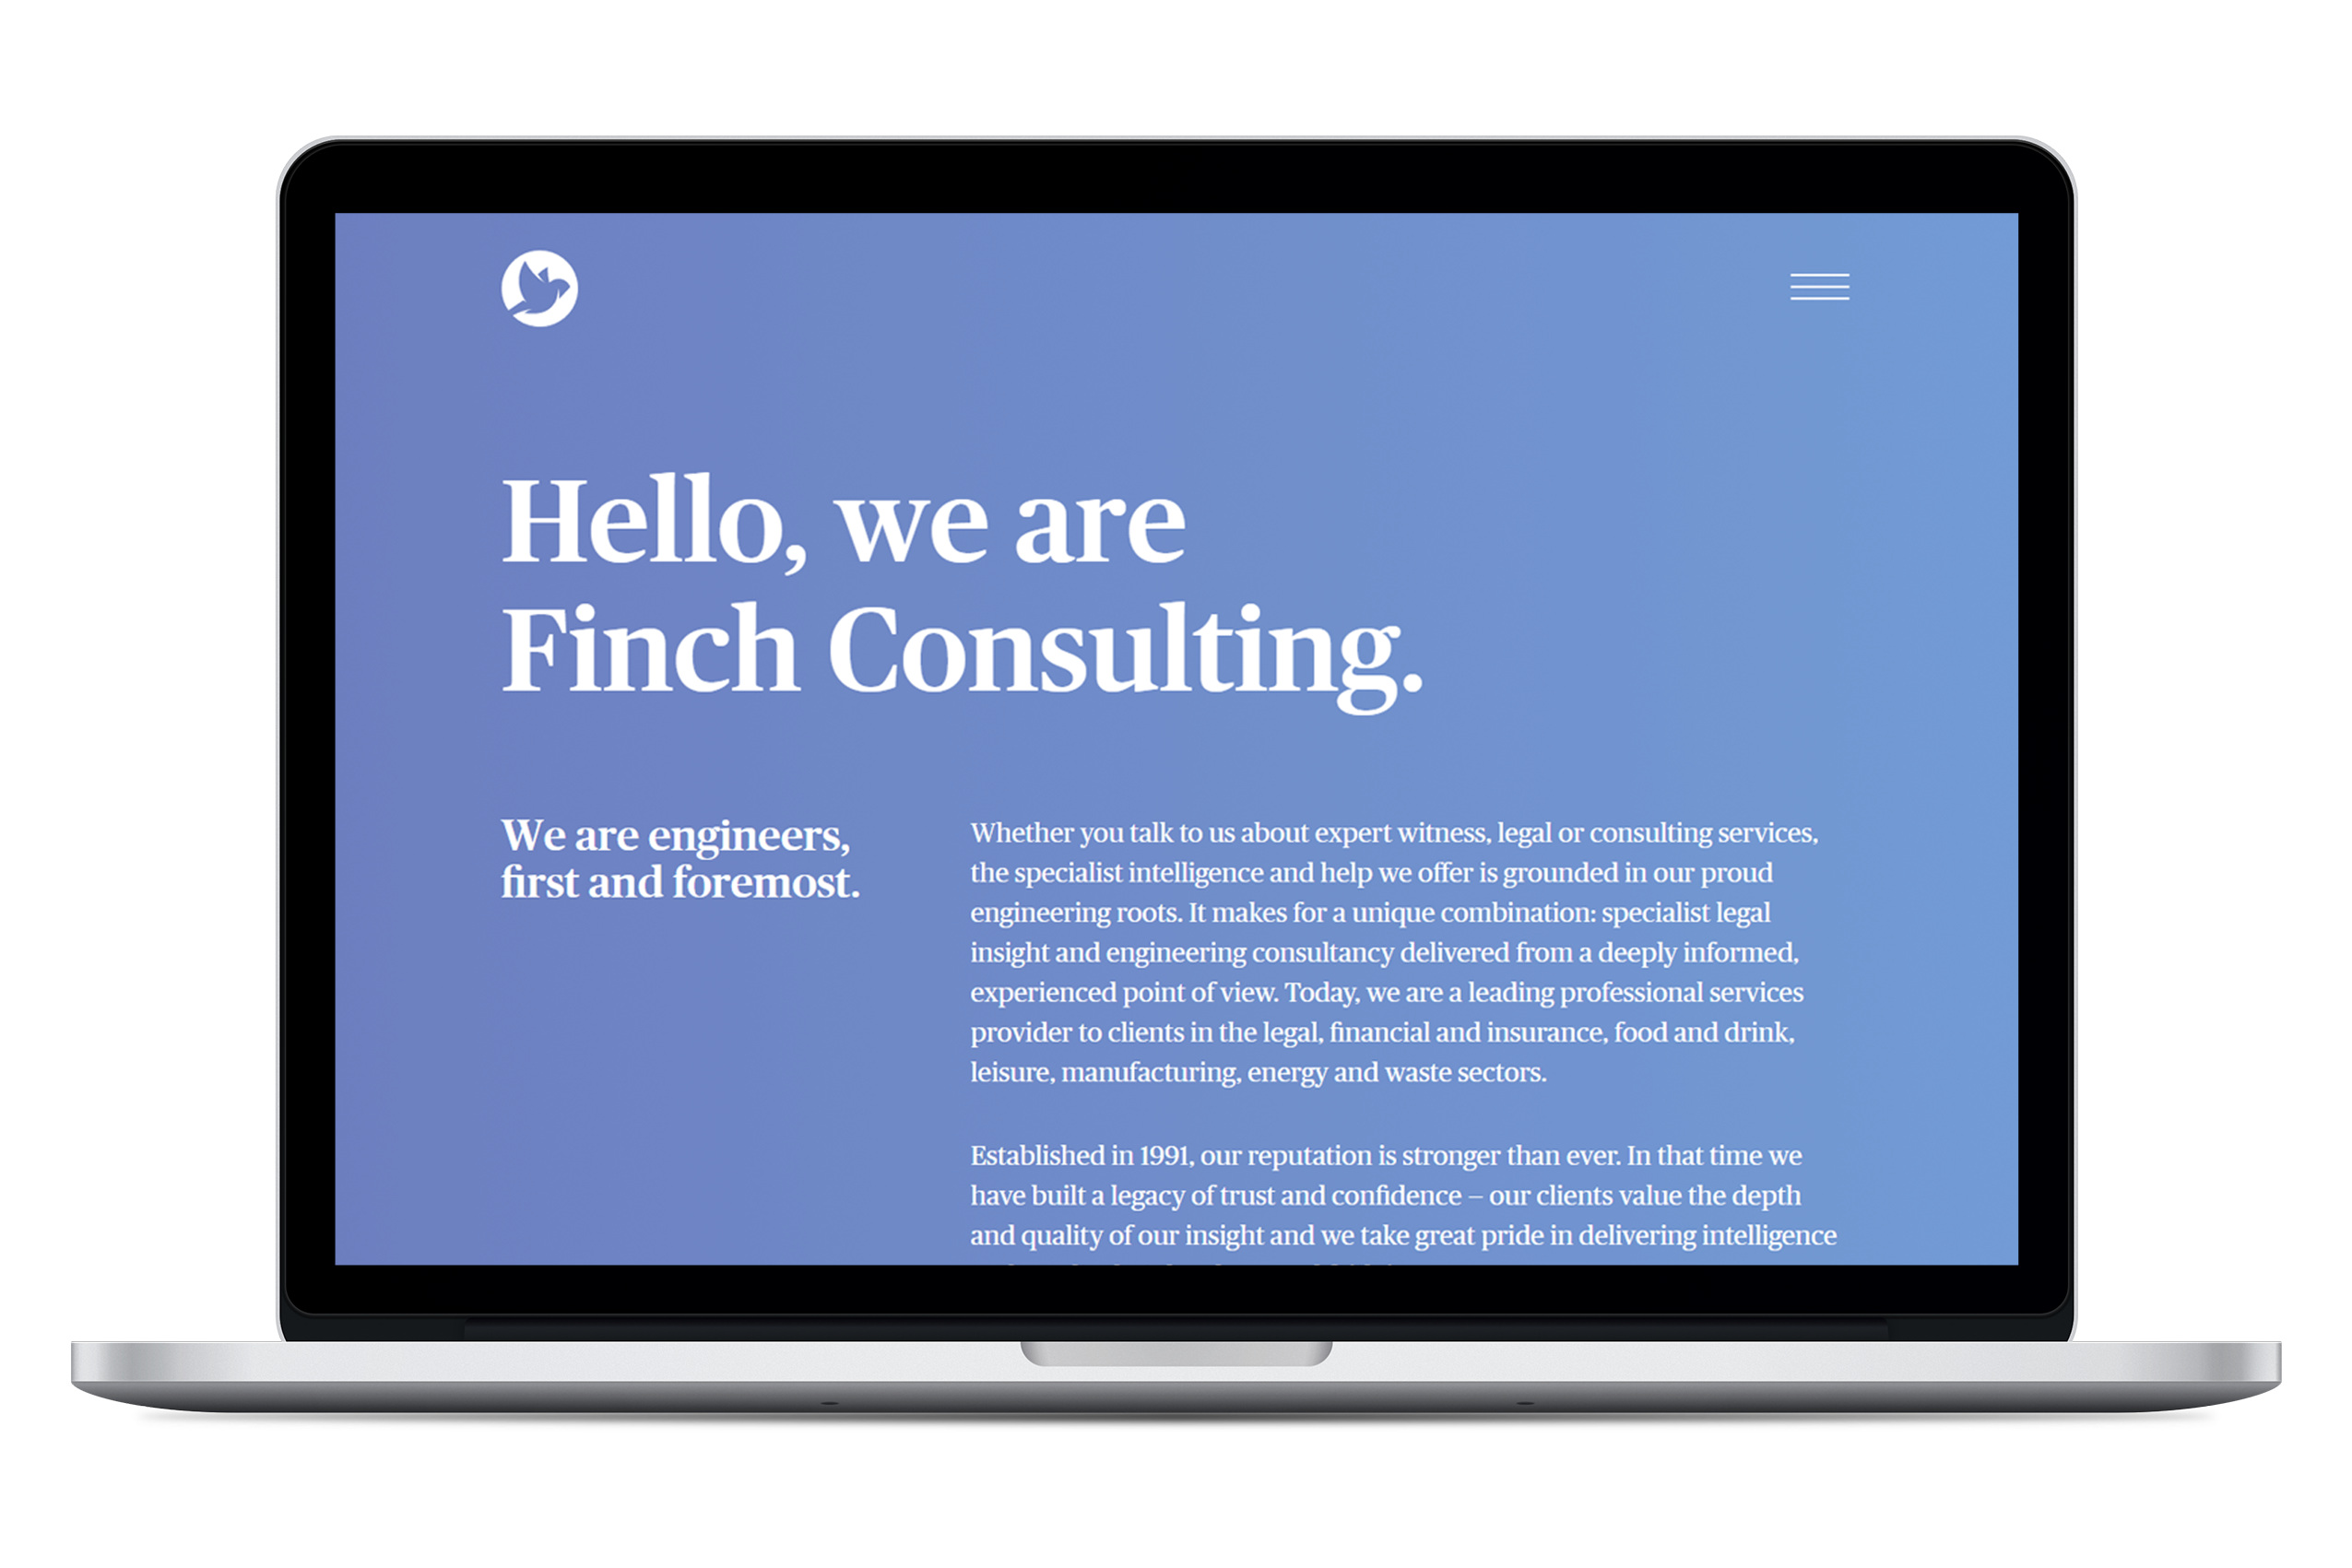 Finch Consulting - Website - LMS Case Study